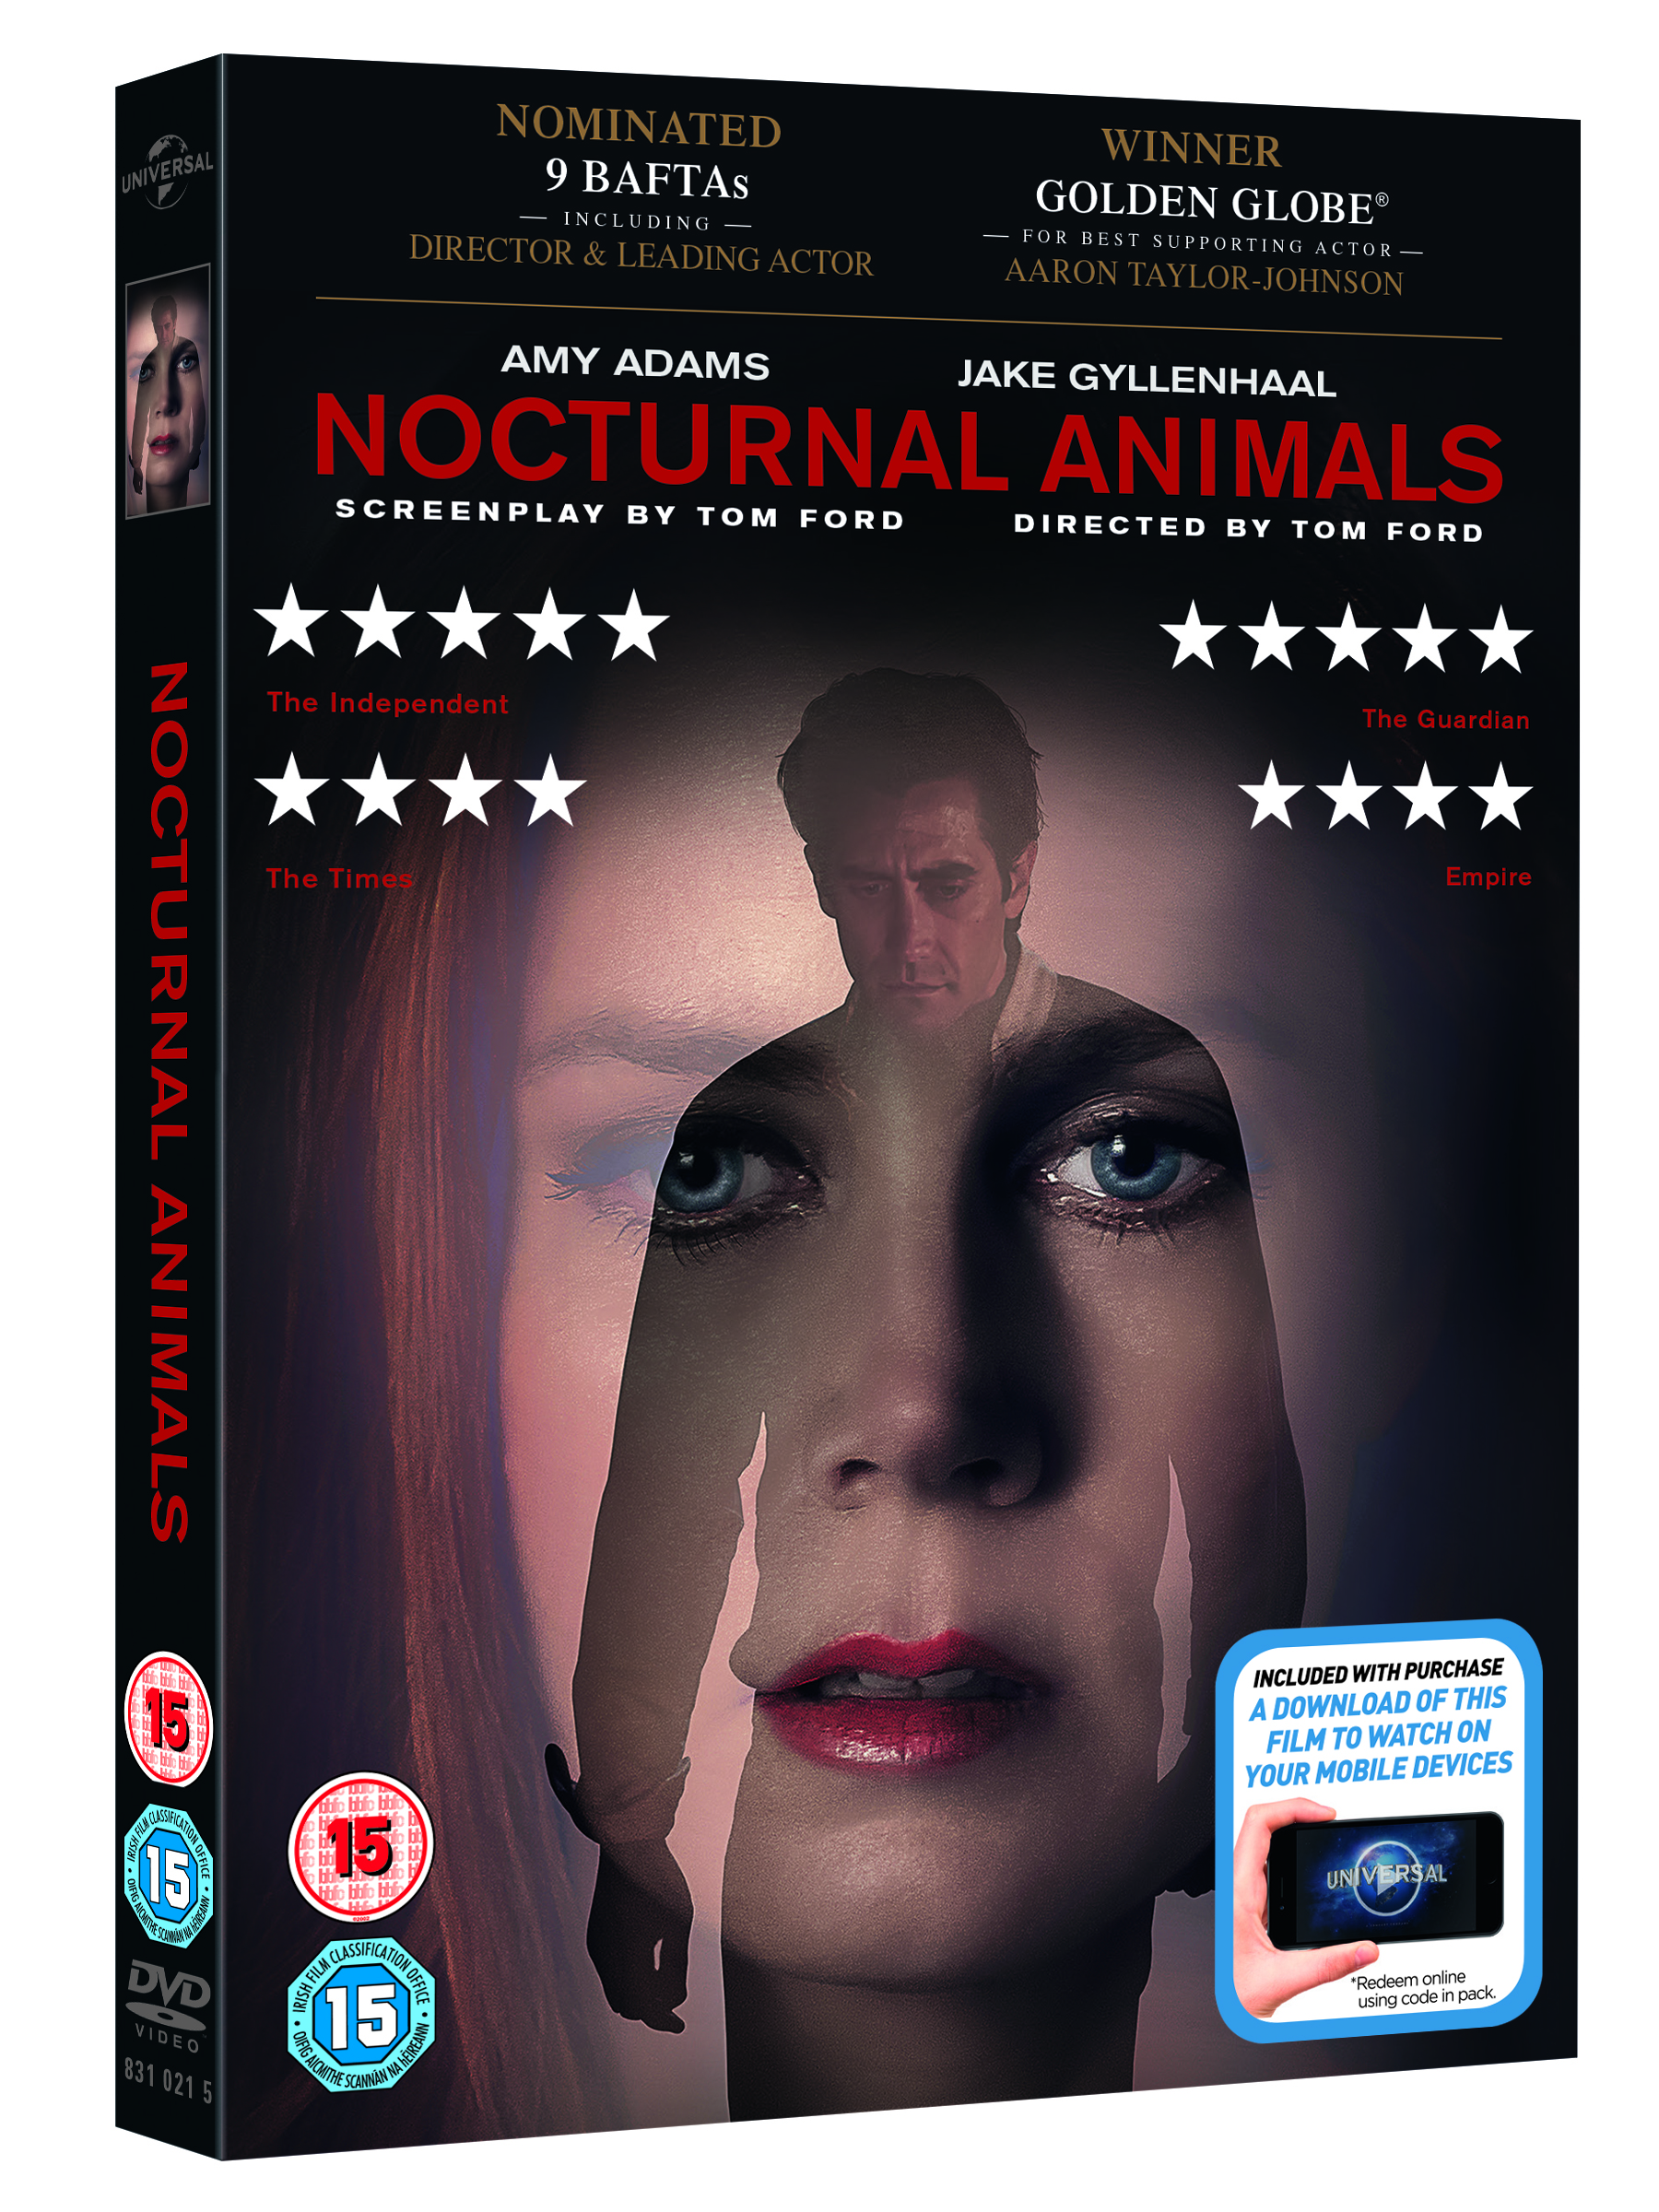 8310215-11 Nocturnal Animals UK DVD Retail O-Ring_3PA